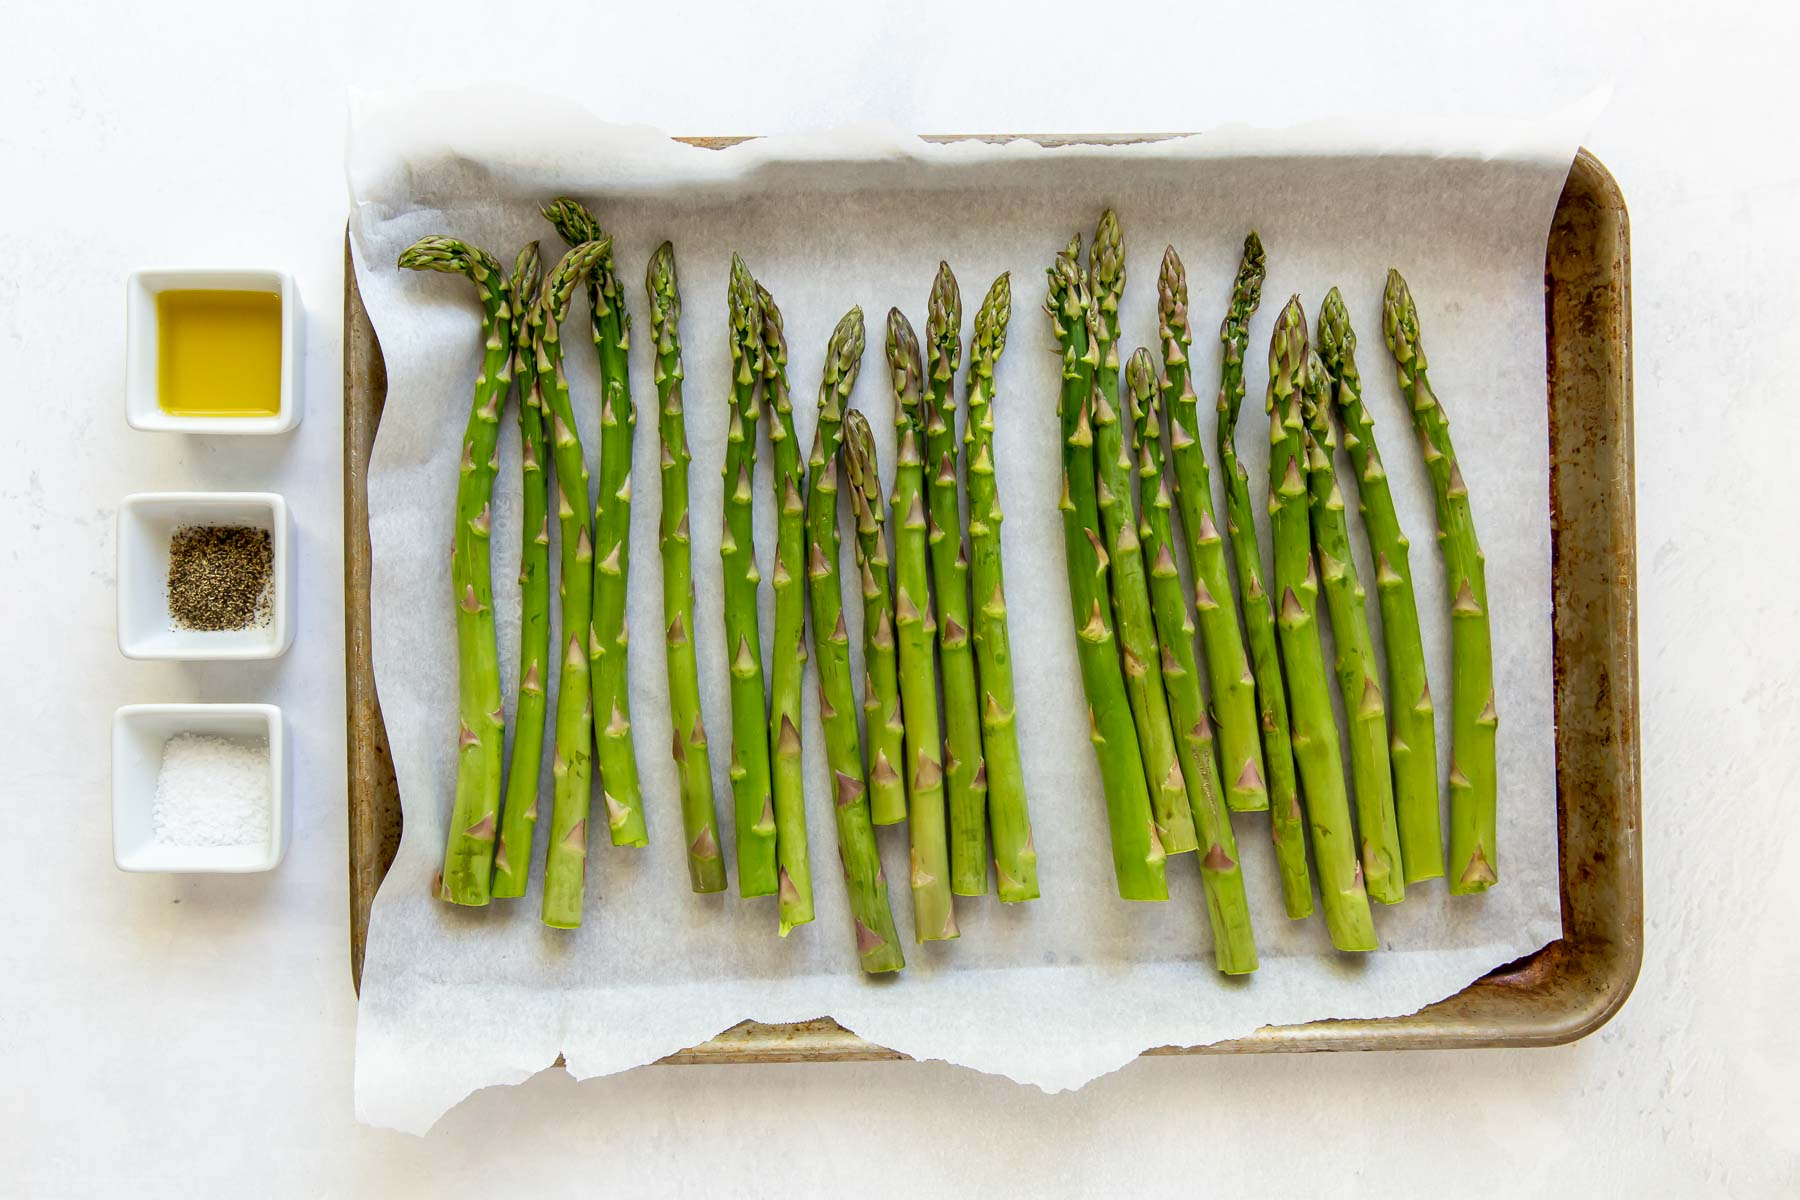 fresh asparagus on baking sheet with dishes of olive oil, salt and pepper on the side